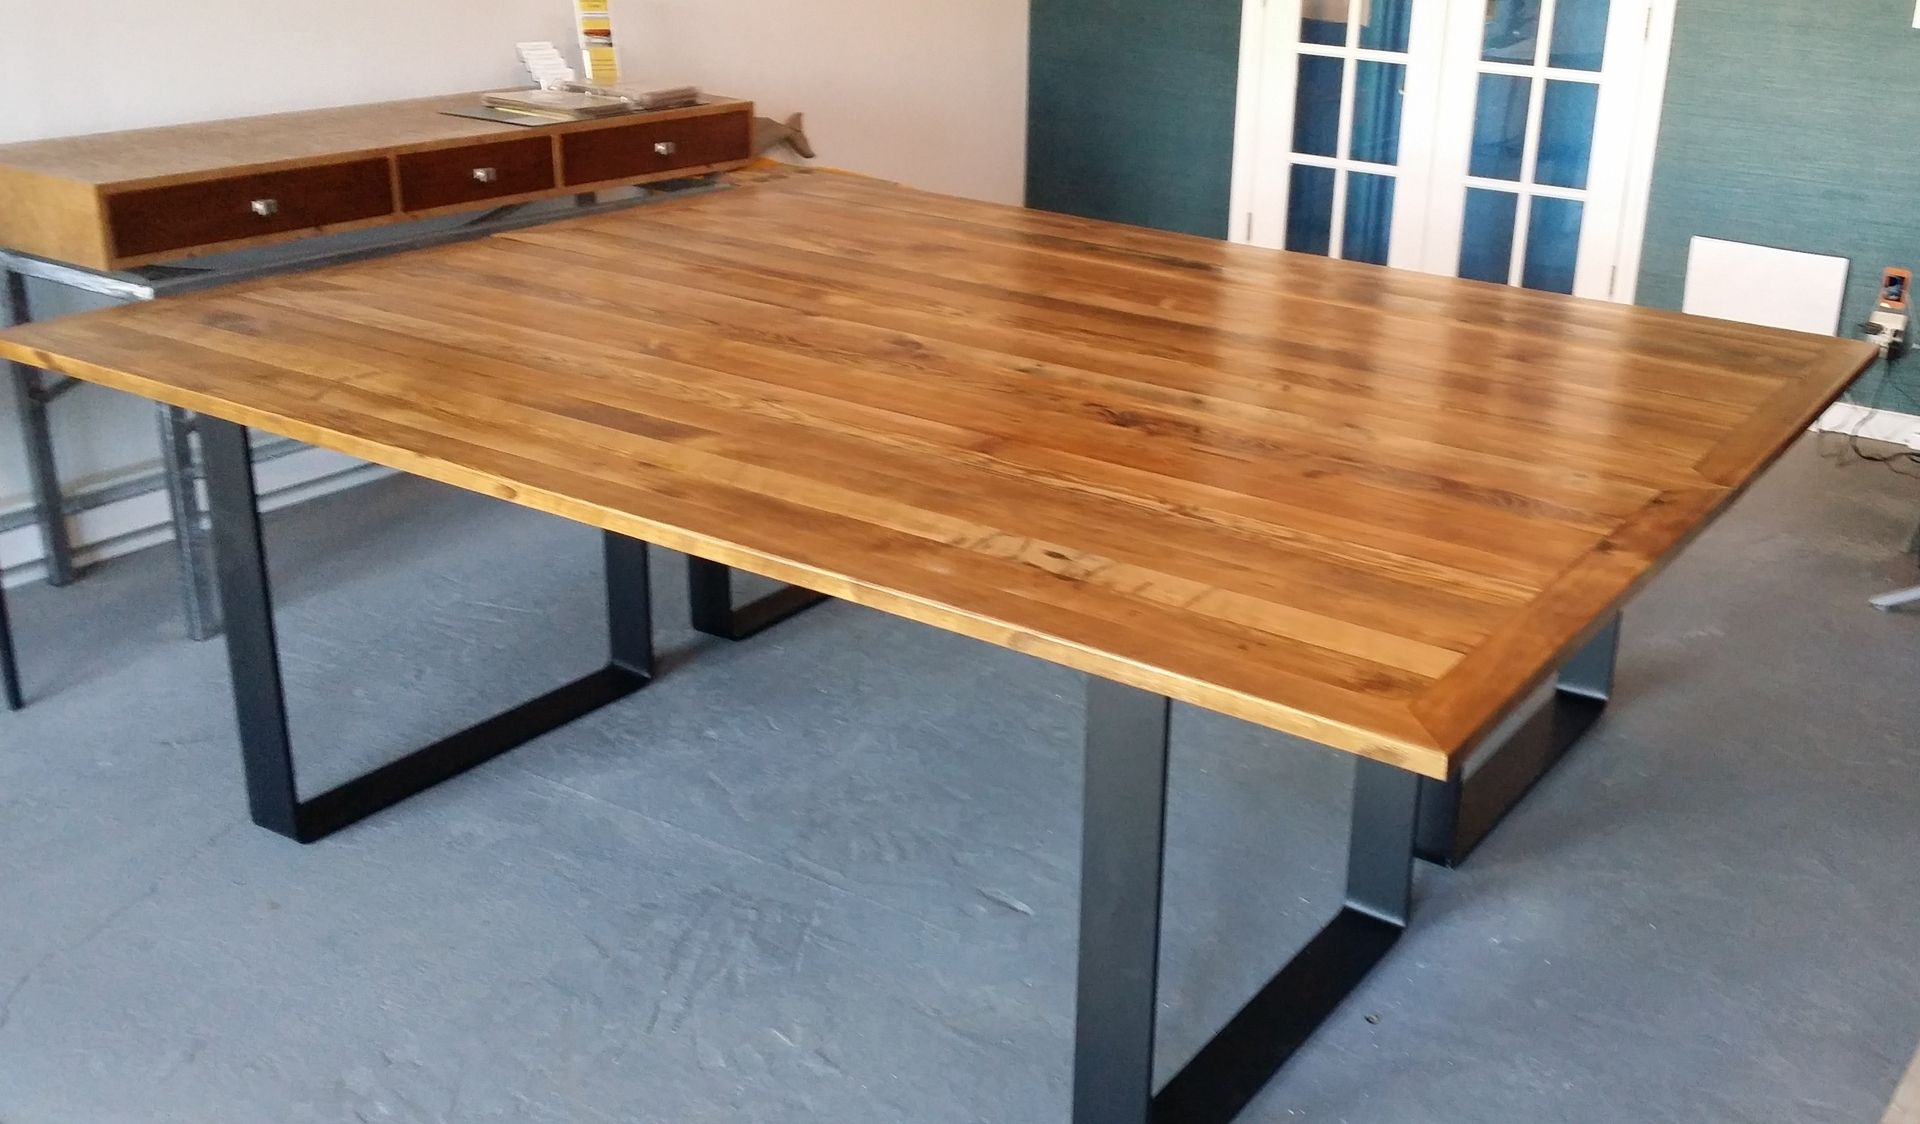 custom made nyc conference room table by blue marlin home custommade